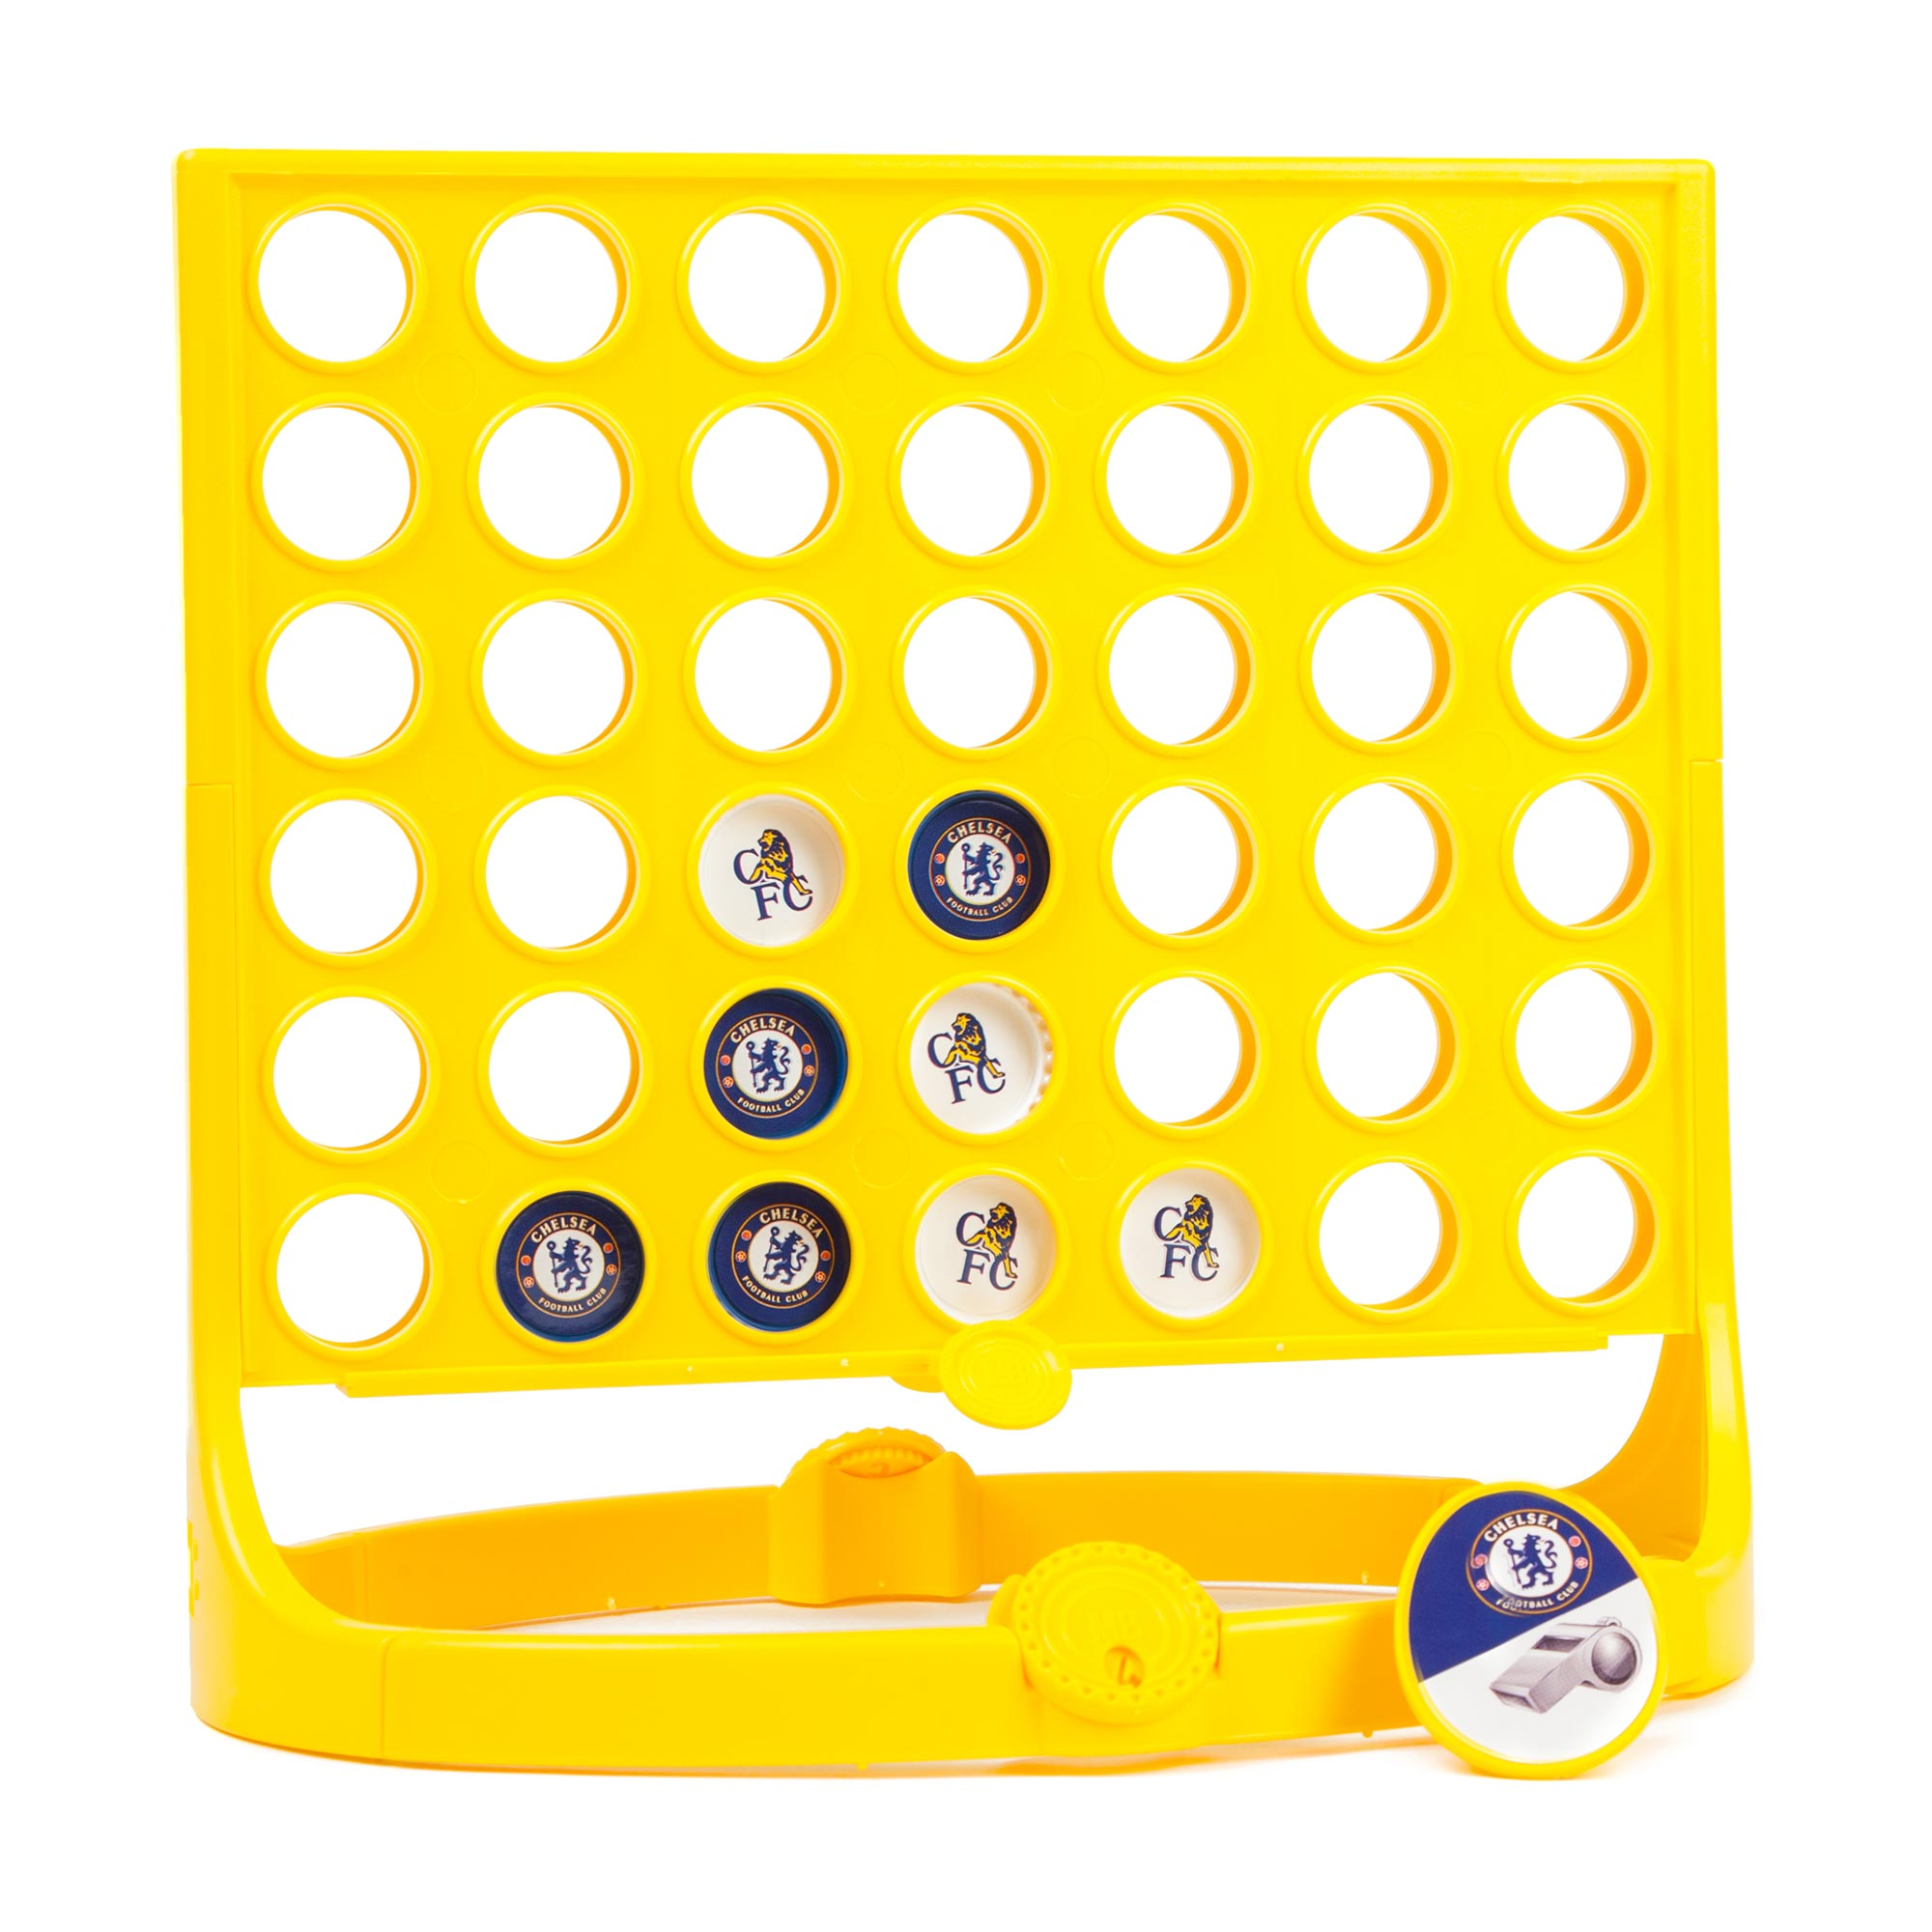 Image of Chelsea Connect Four Game